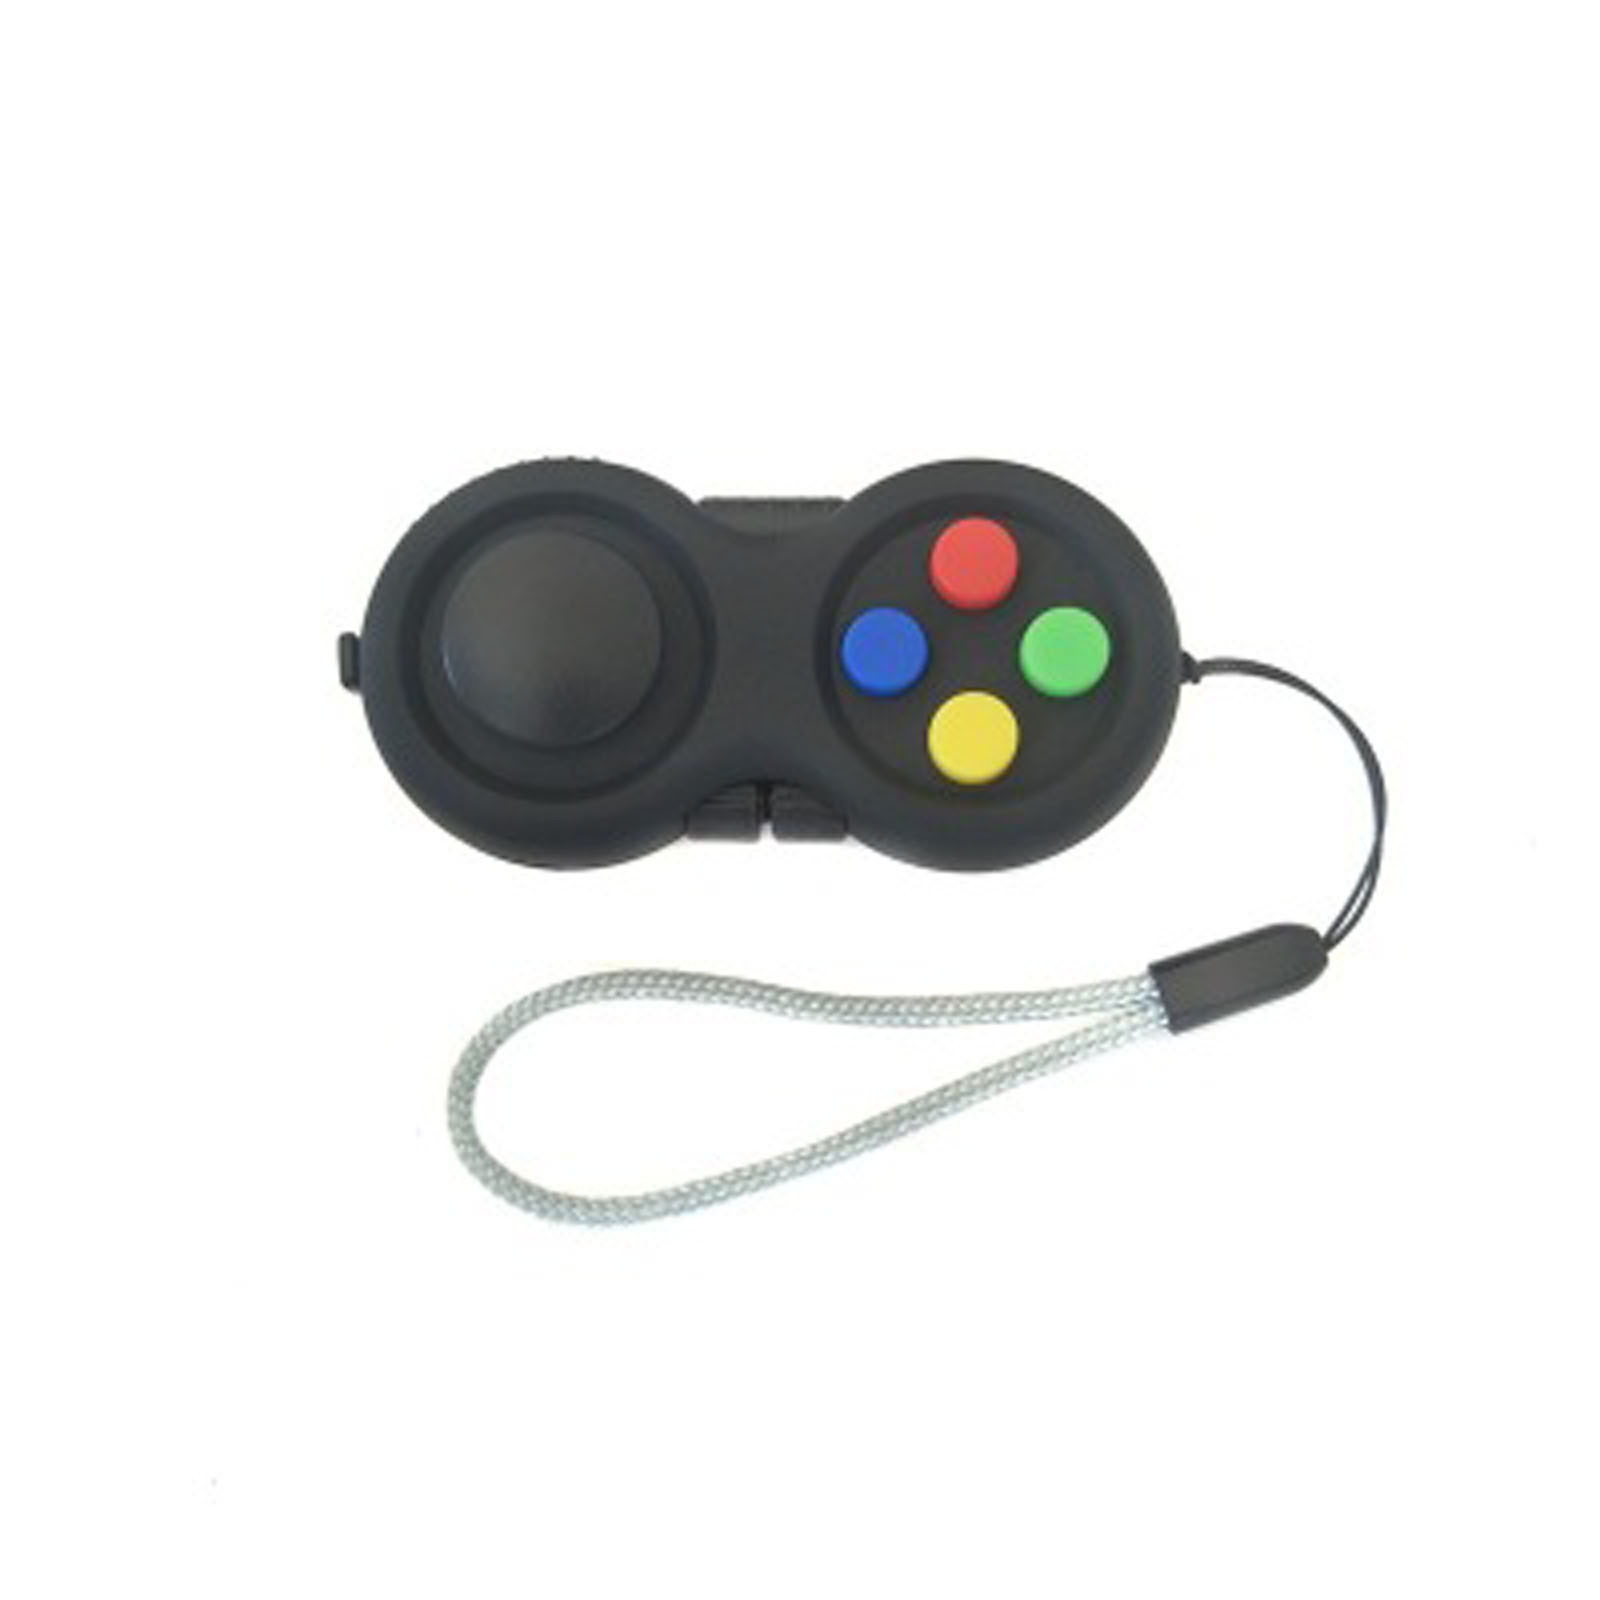 Happy-Sensory-Toys Gamepad Relief-Ball Decompression Stress Anxiety Adults Children Spo img2